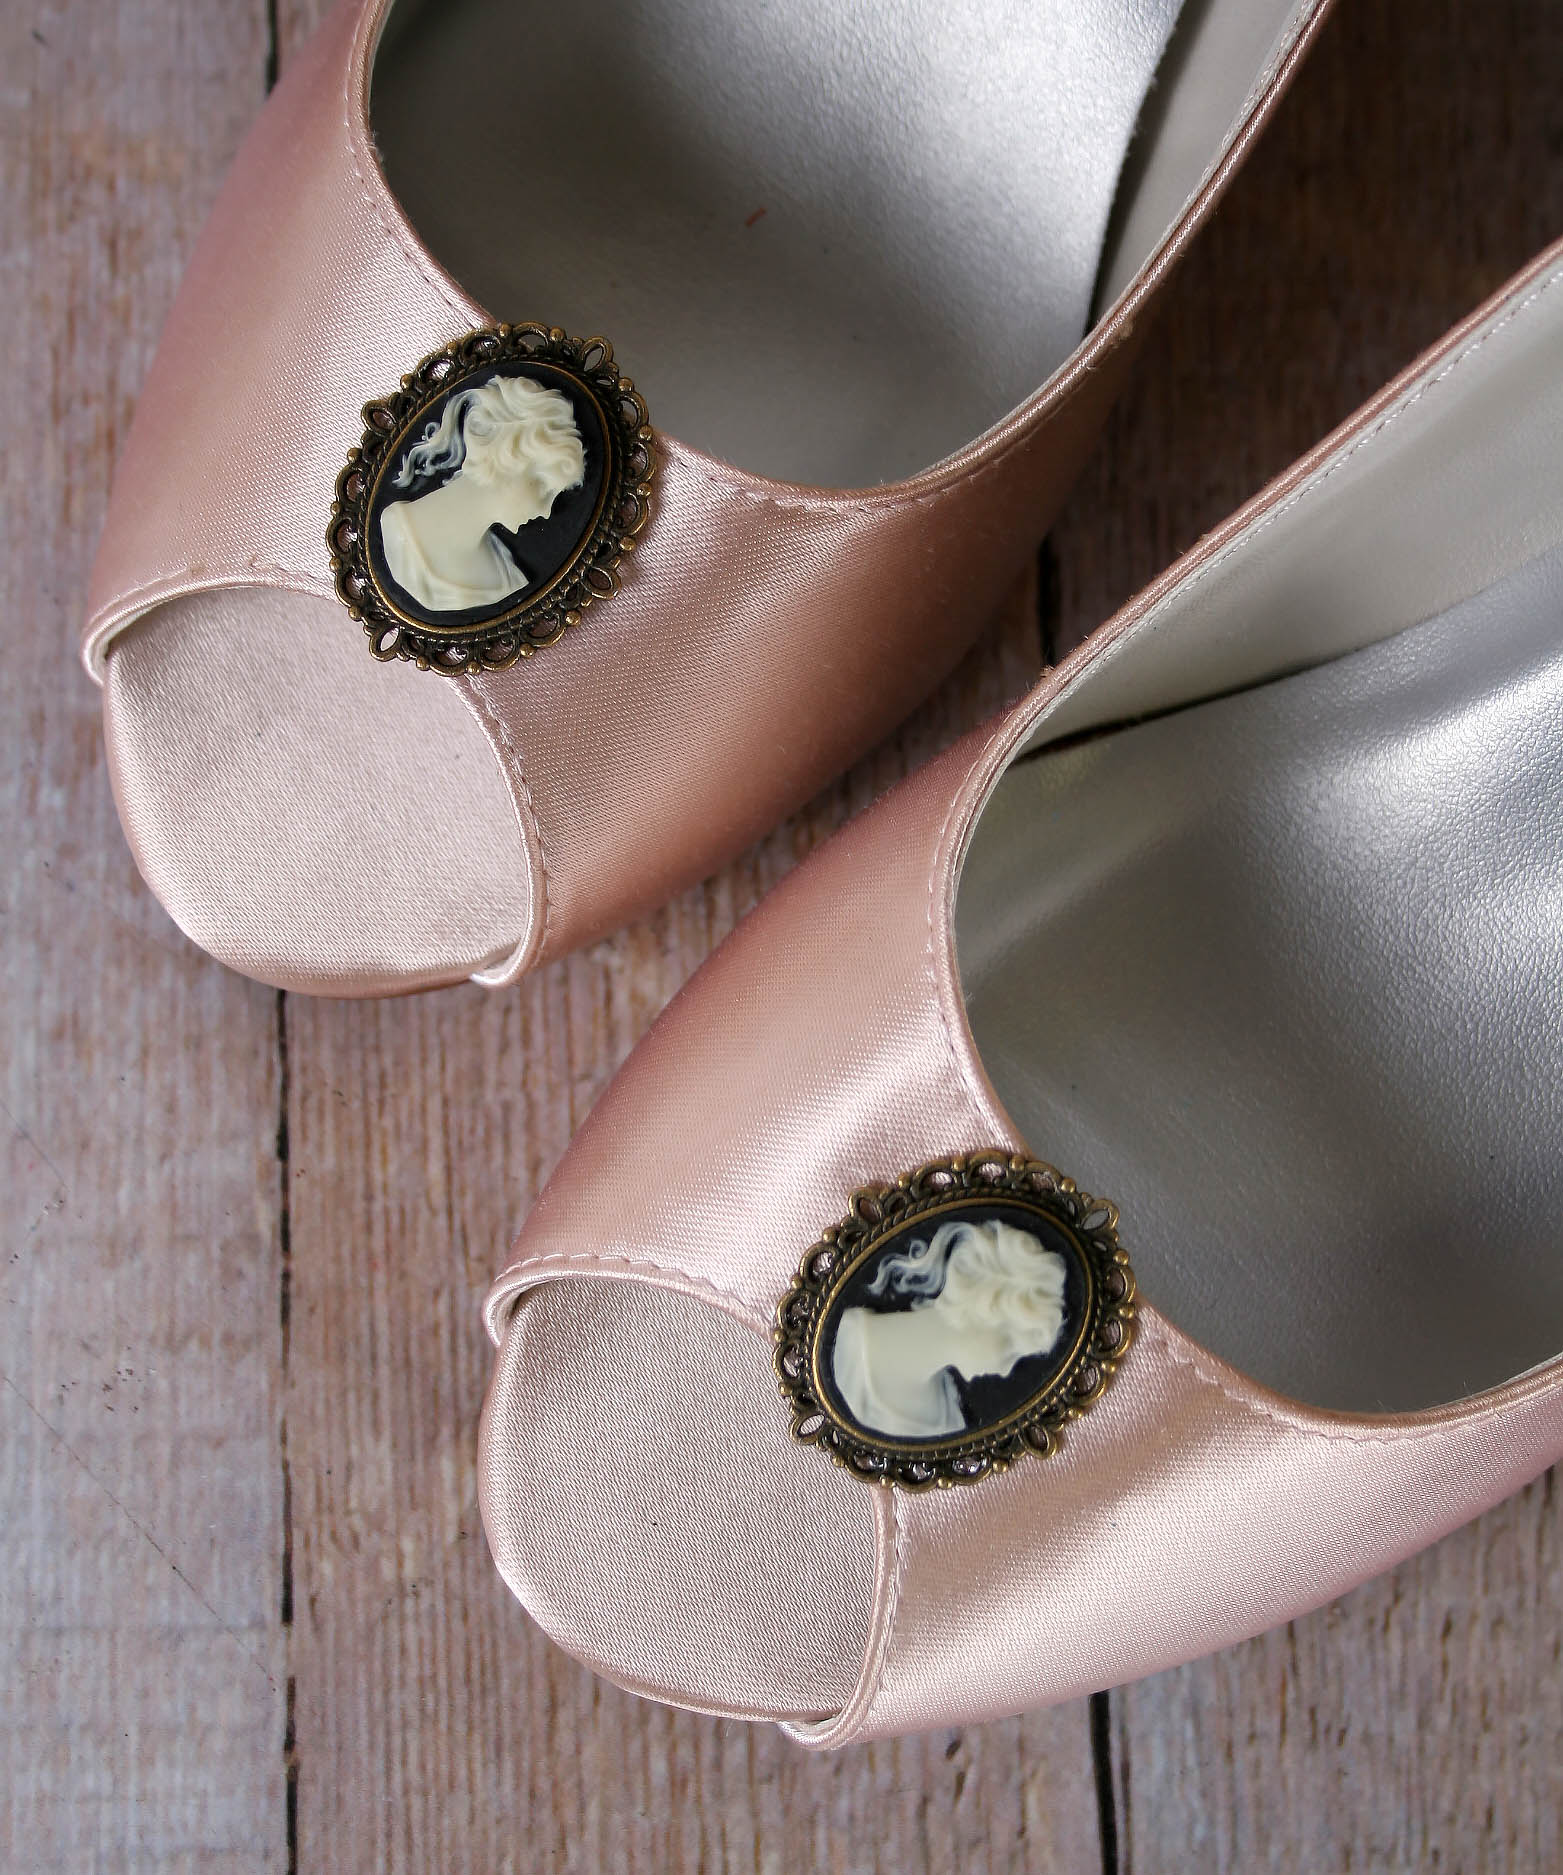 Bridal Wedges in Blush with Cameo Brooch Vintage Bridal Wedges Custom Designed by Ellie Wren